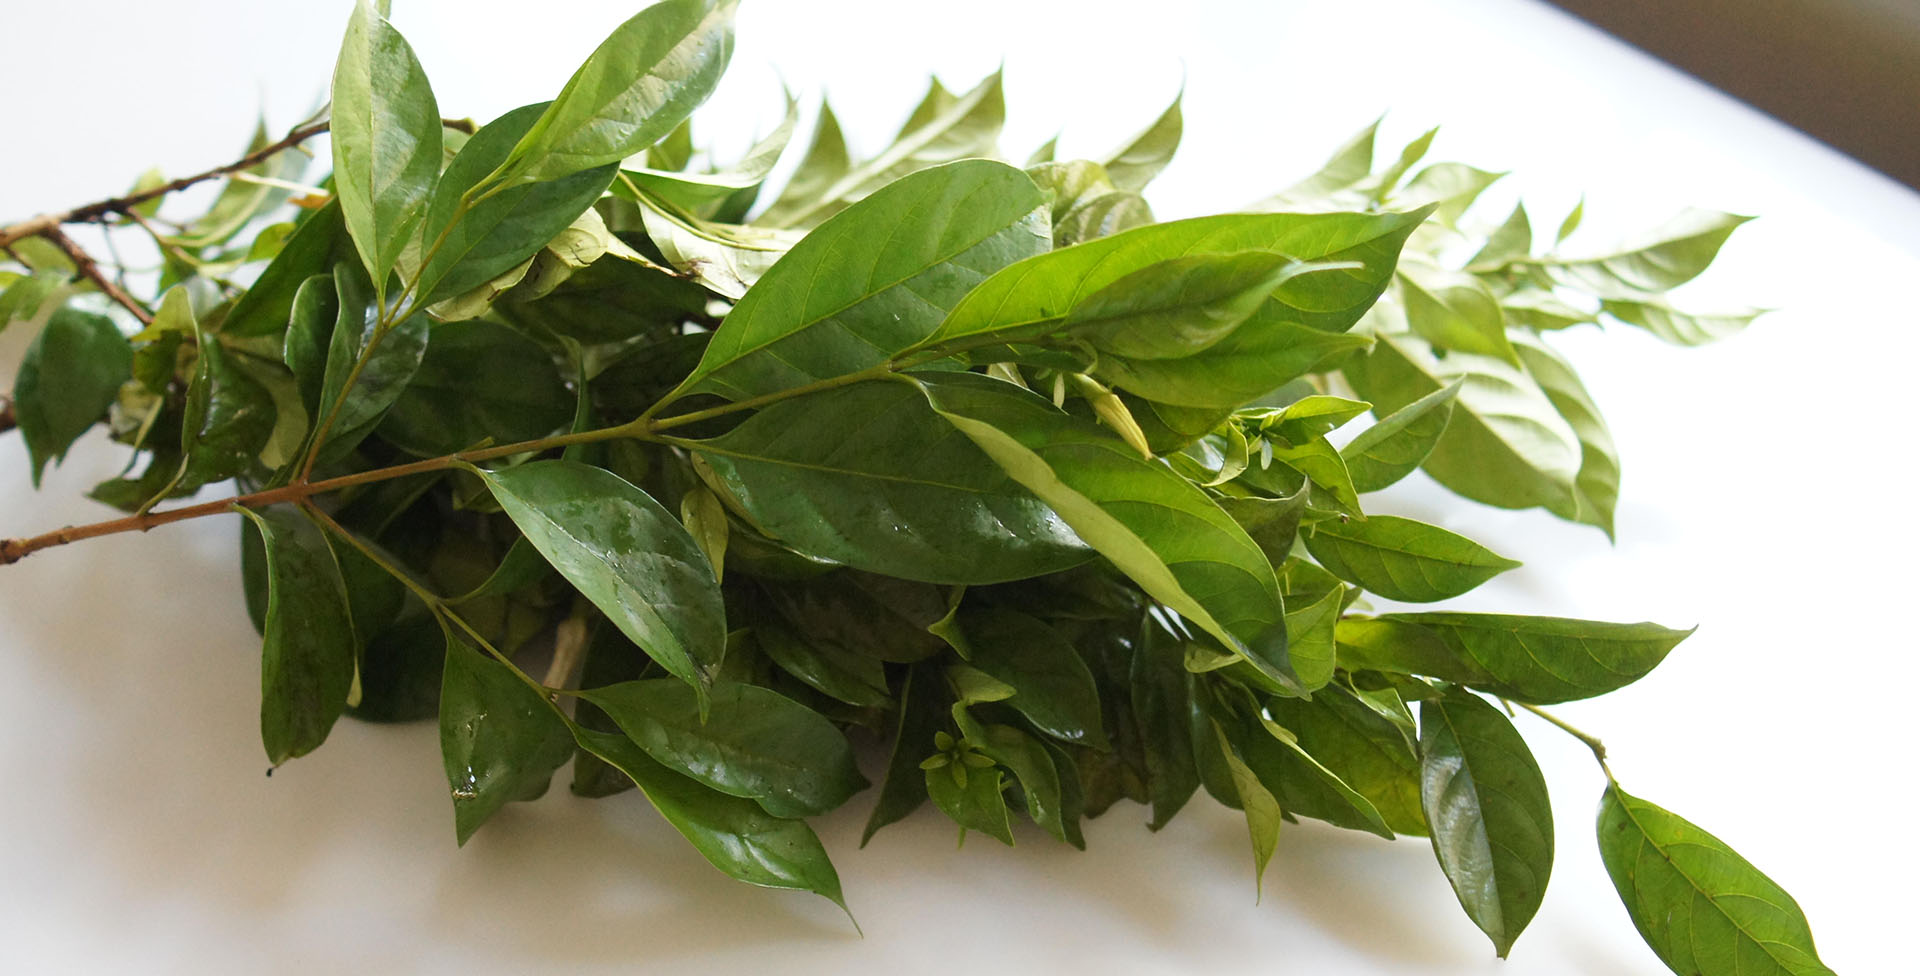 How to identify Atama leaves which is used for cooking Abak